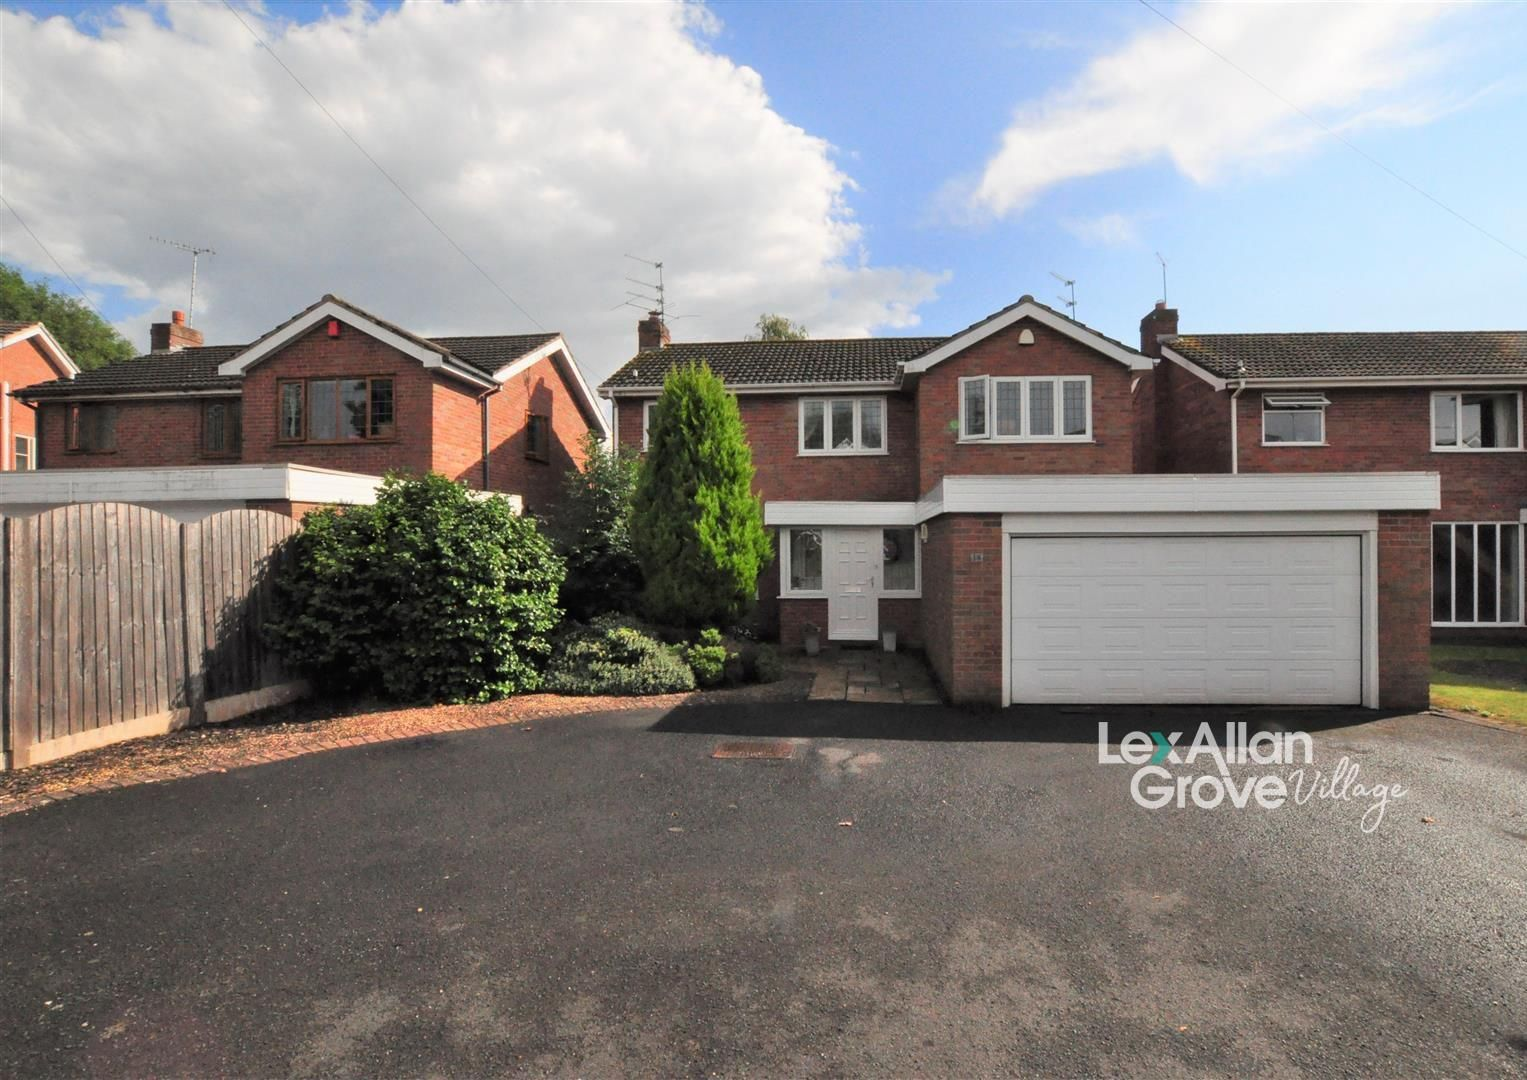 4 bed house for sale in Hagley 30